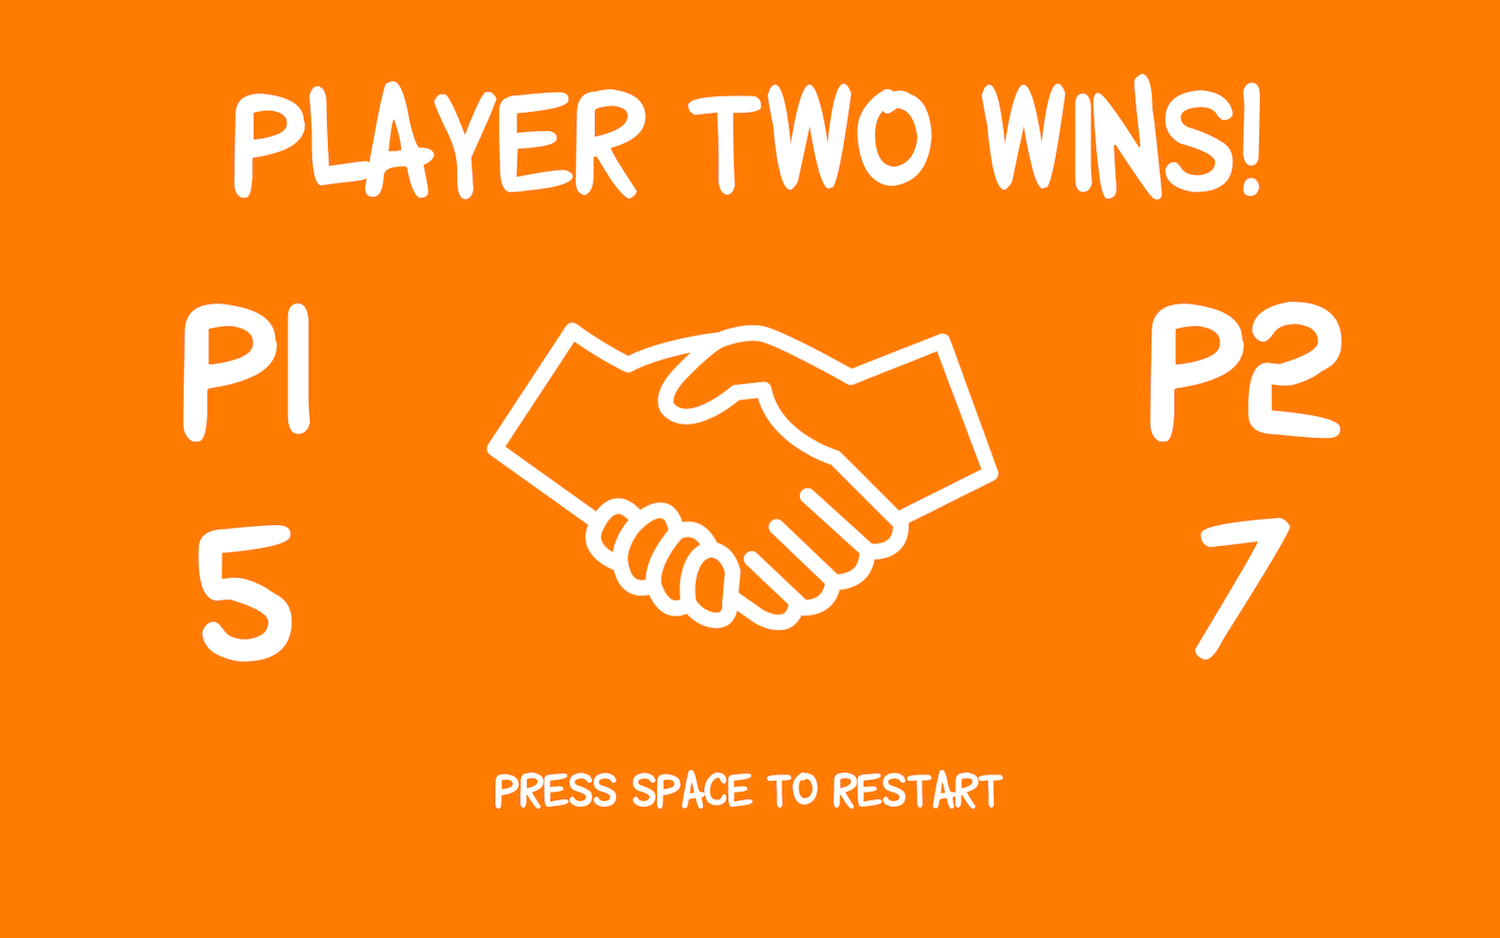 The score screen of Not-so-stranger, showing Player 2 winning by 5 points to 7 points.